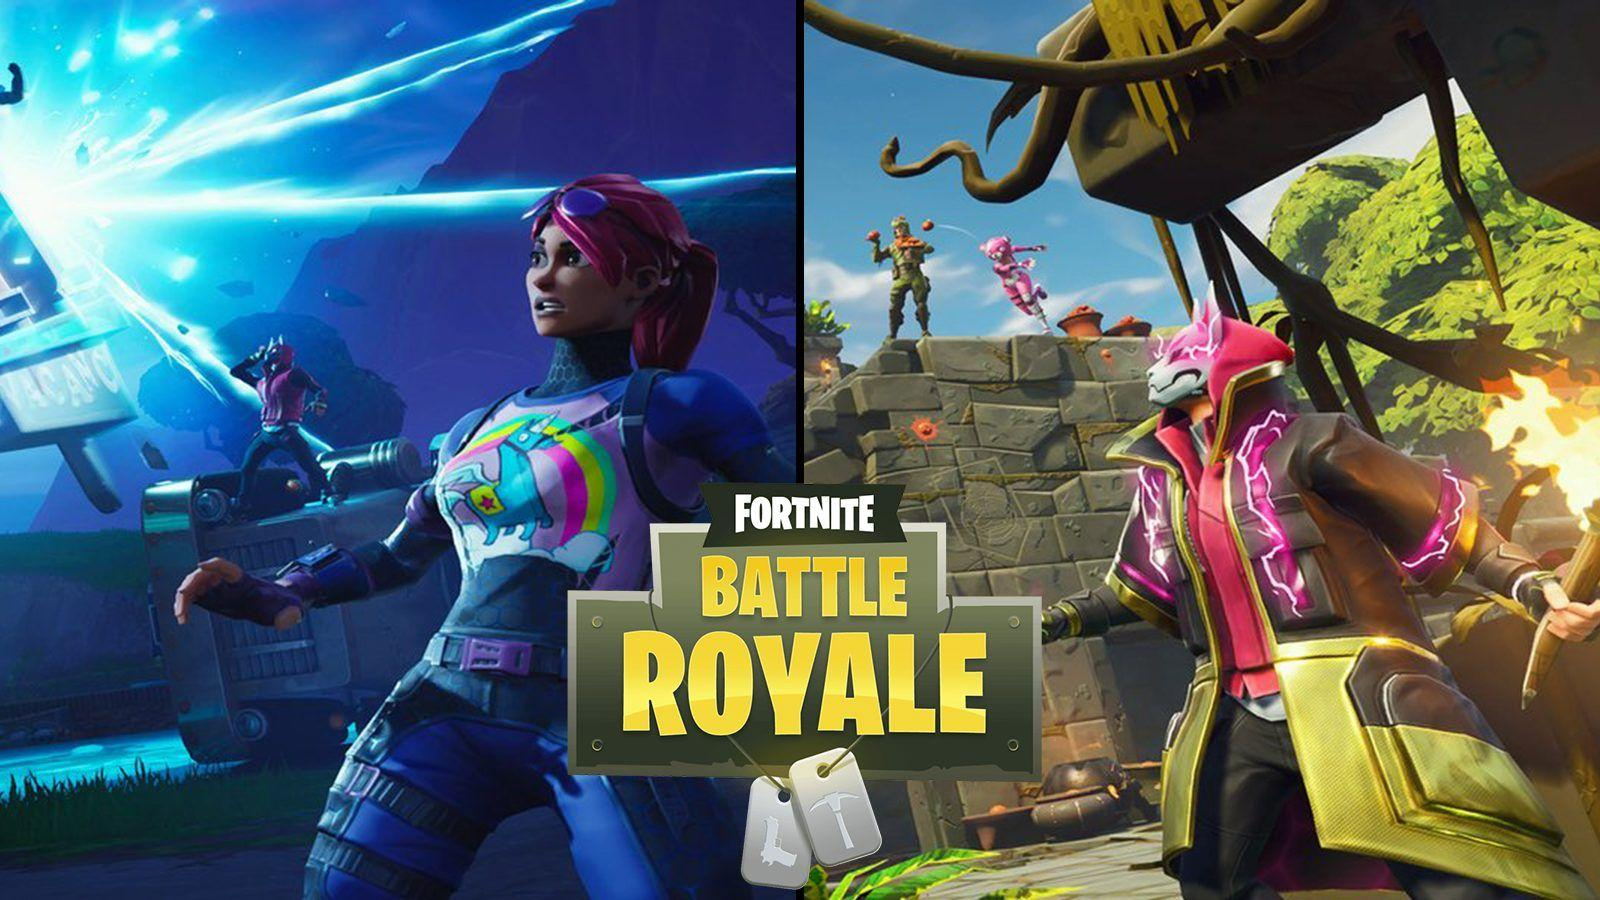 Leaks Reveal Week 7 & 8 Loading Screens for Fortnite | Dexerto.com ...